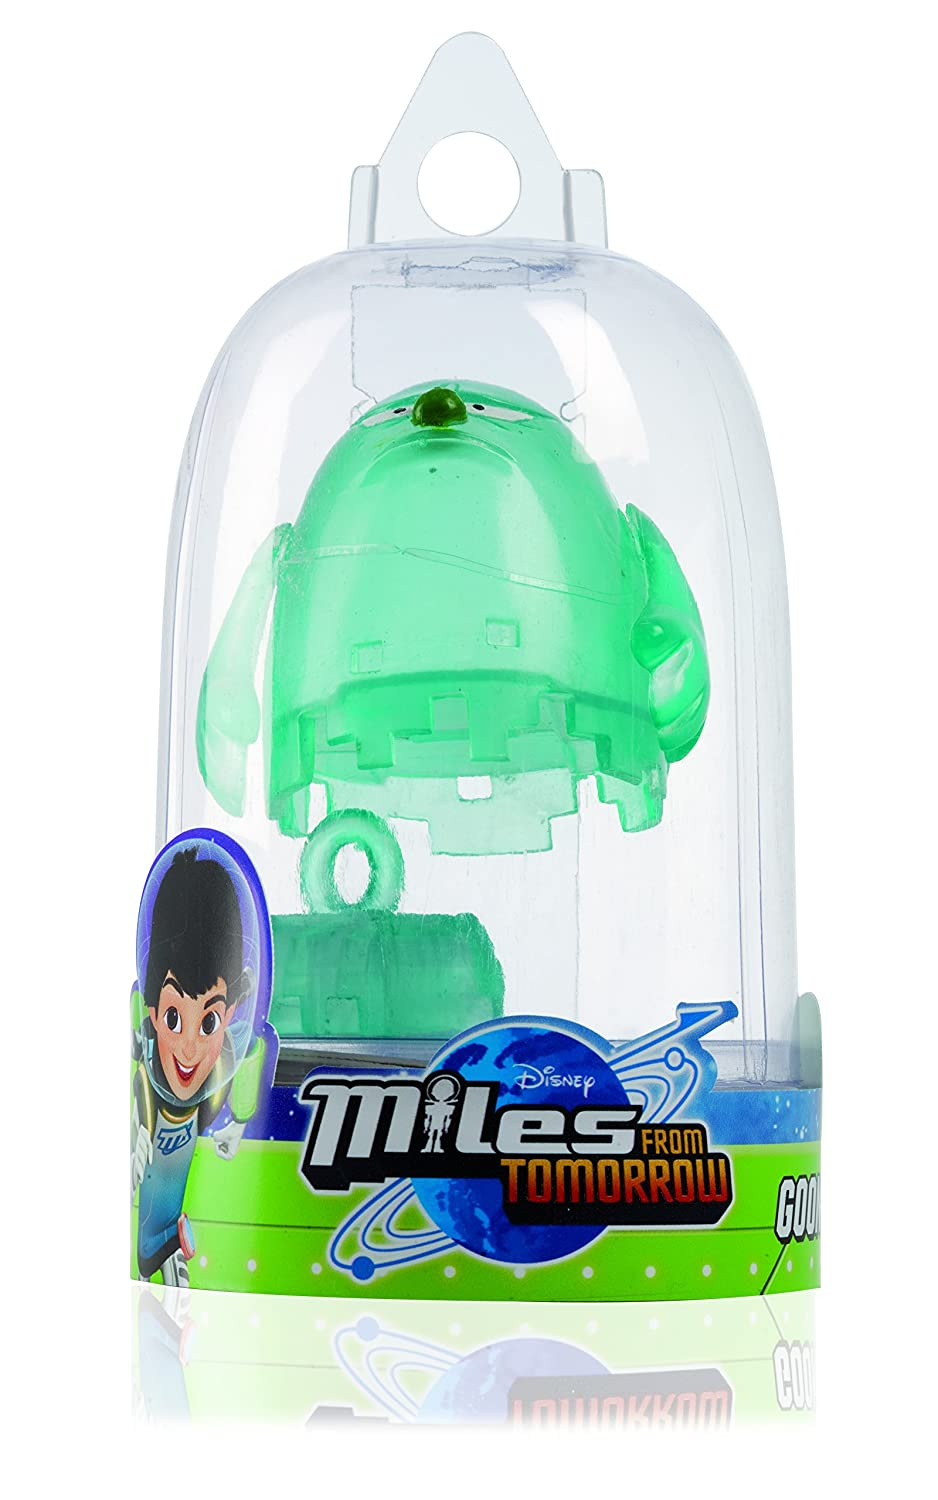 IMC Toys Goon Mile from Tomorrowland Toy Figure